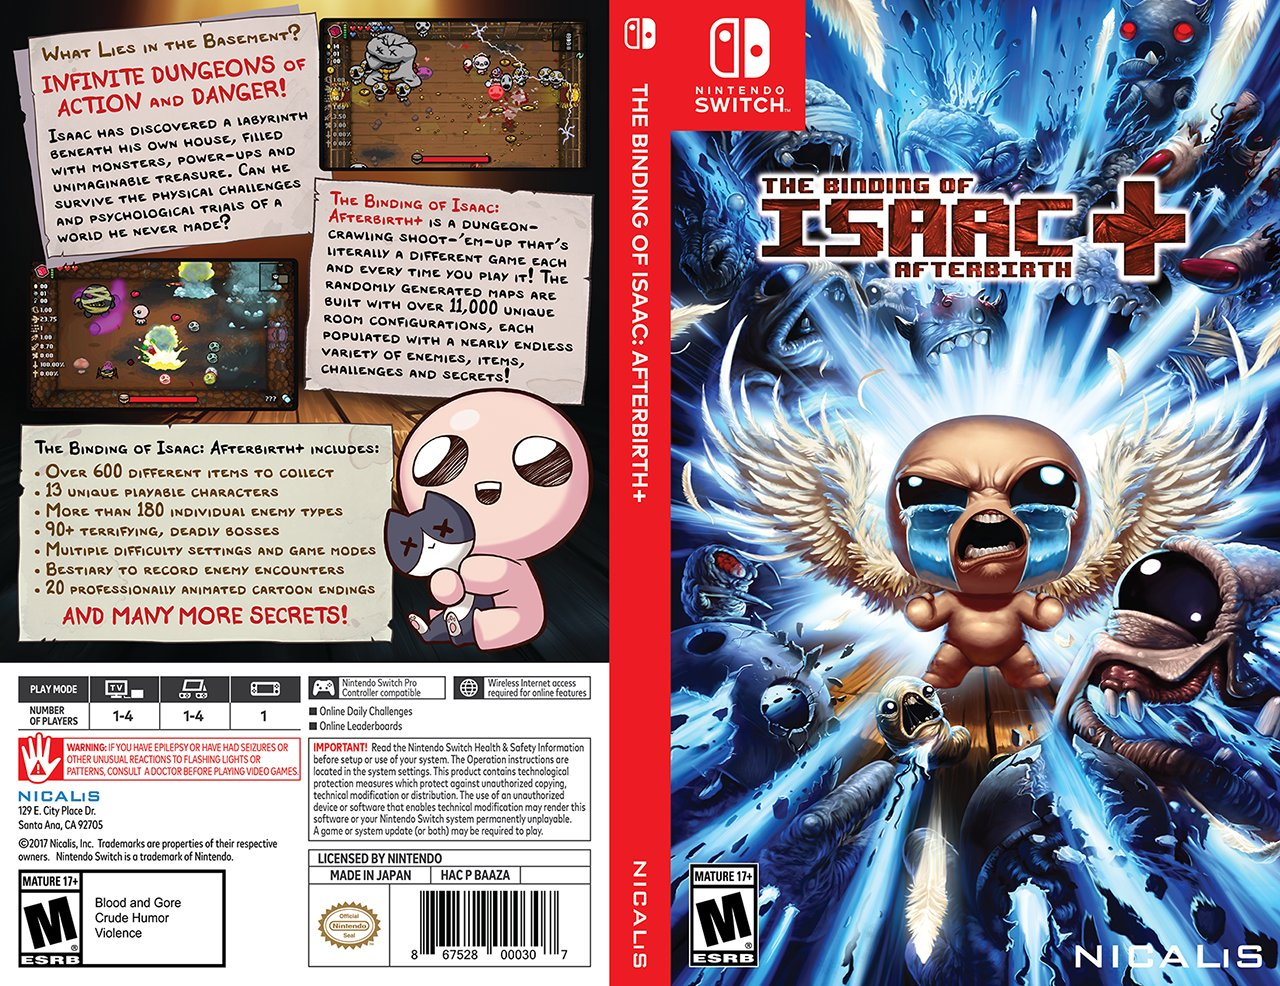 photograph about Printable Video Game Covers known as The Binding Of Isaac Afterbirth+ Turning out to be Instant Print